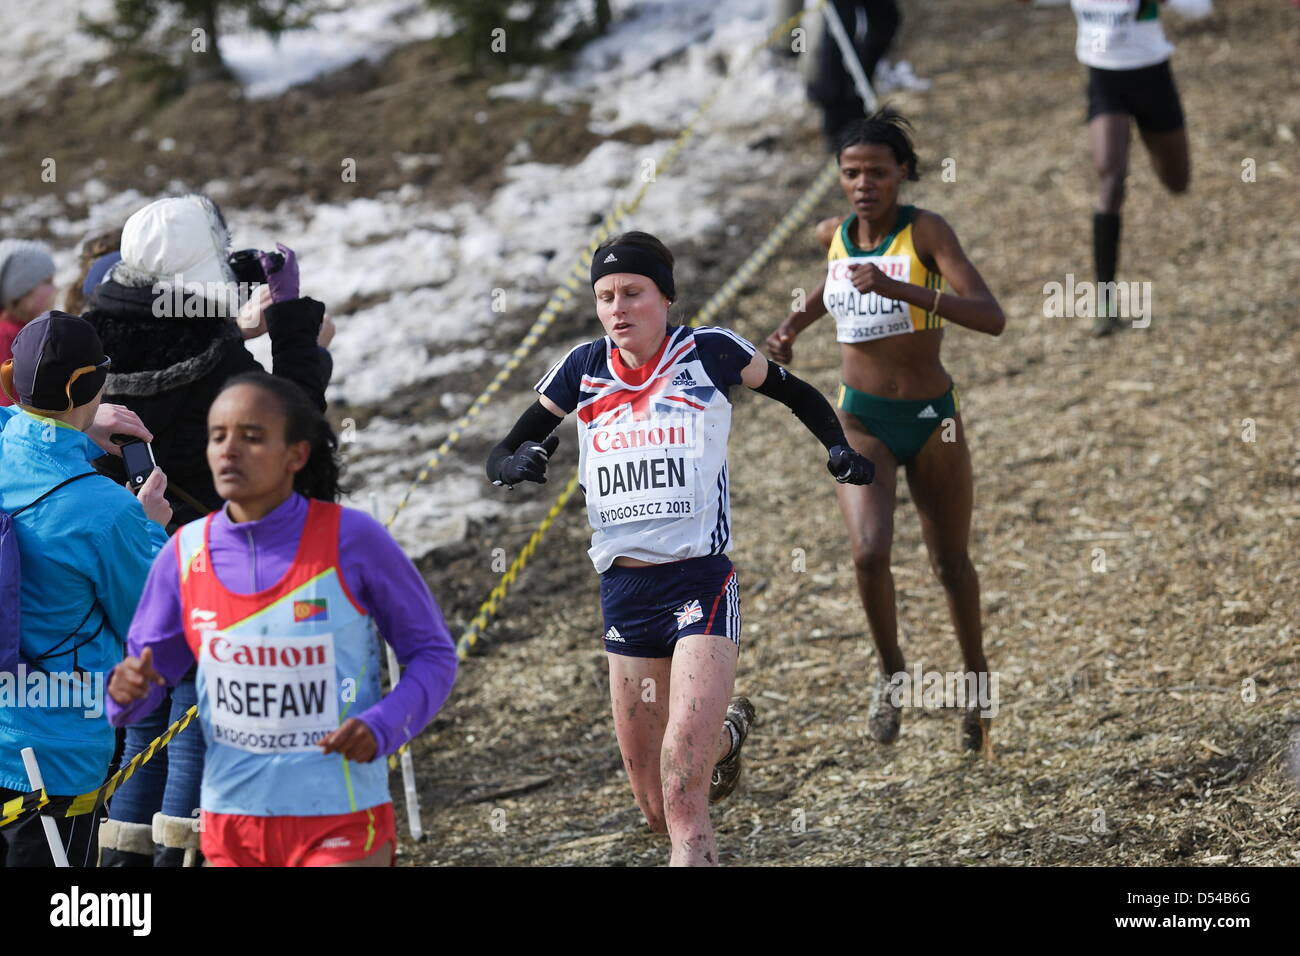 Bydgoszcz, Poland 24th, March 2013 IAAF World Cross Country Chamiponships. Senior Race Woman.  Pictured: Louise - Stock Image